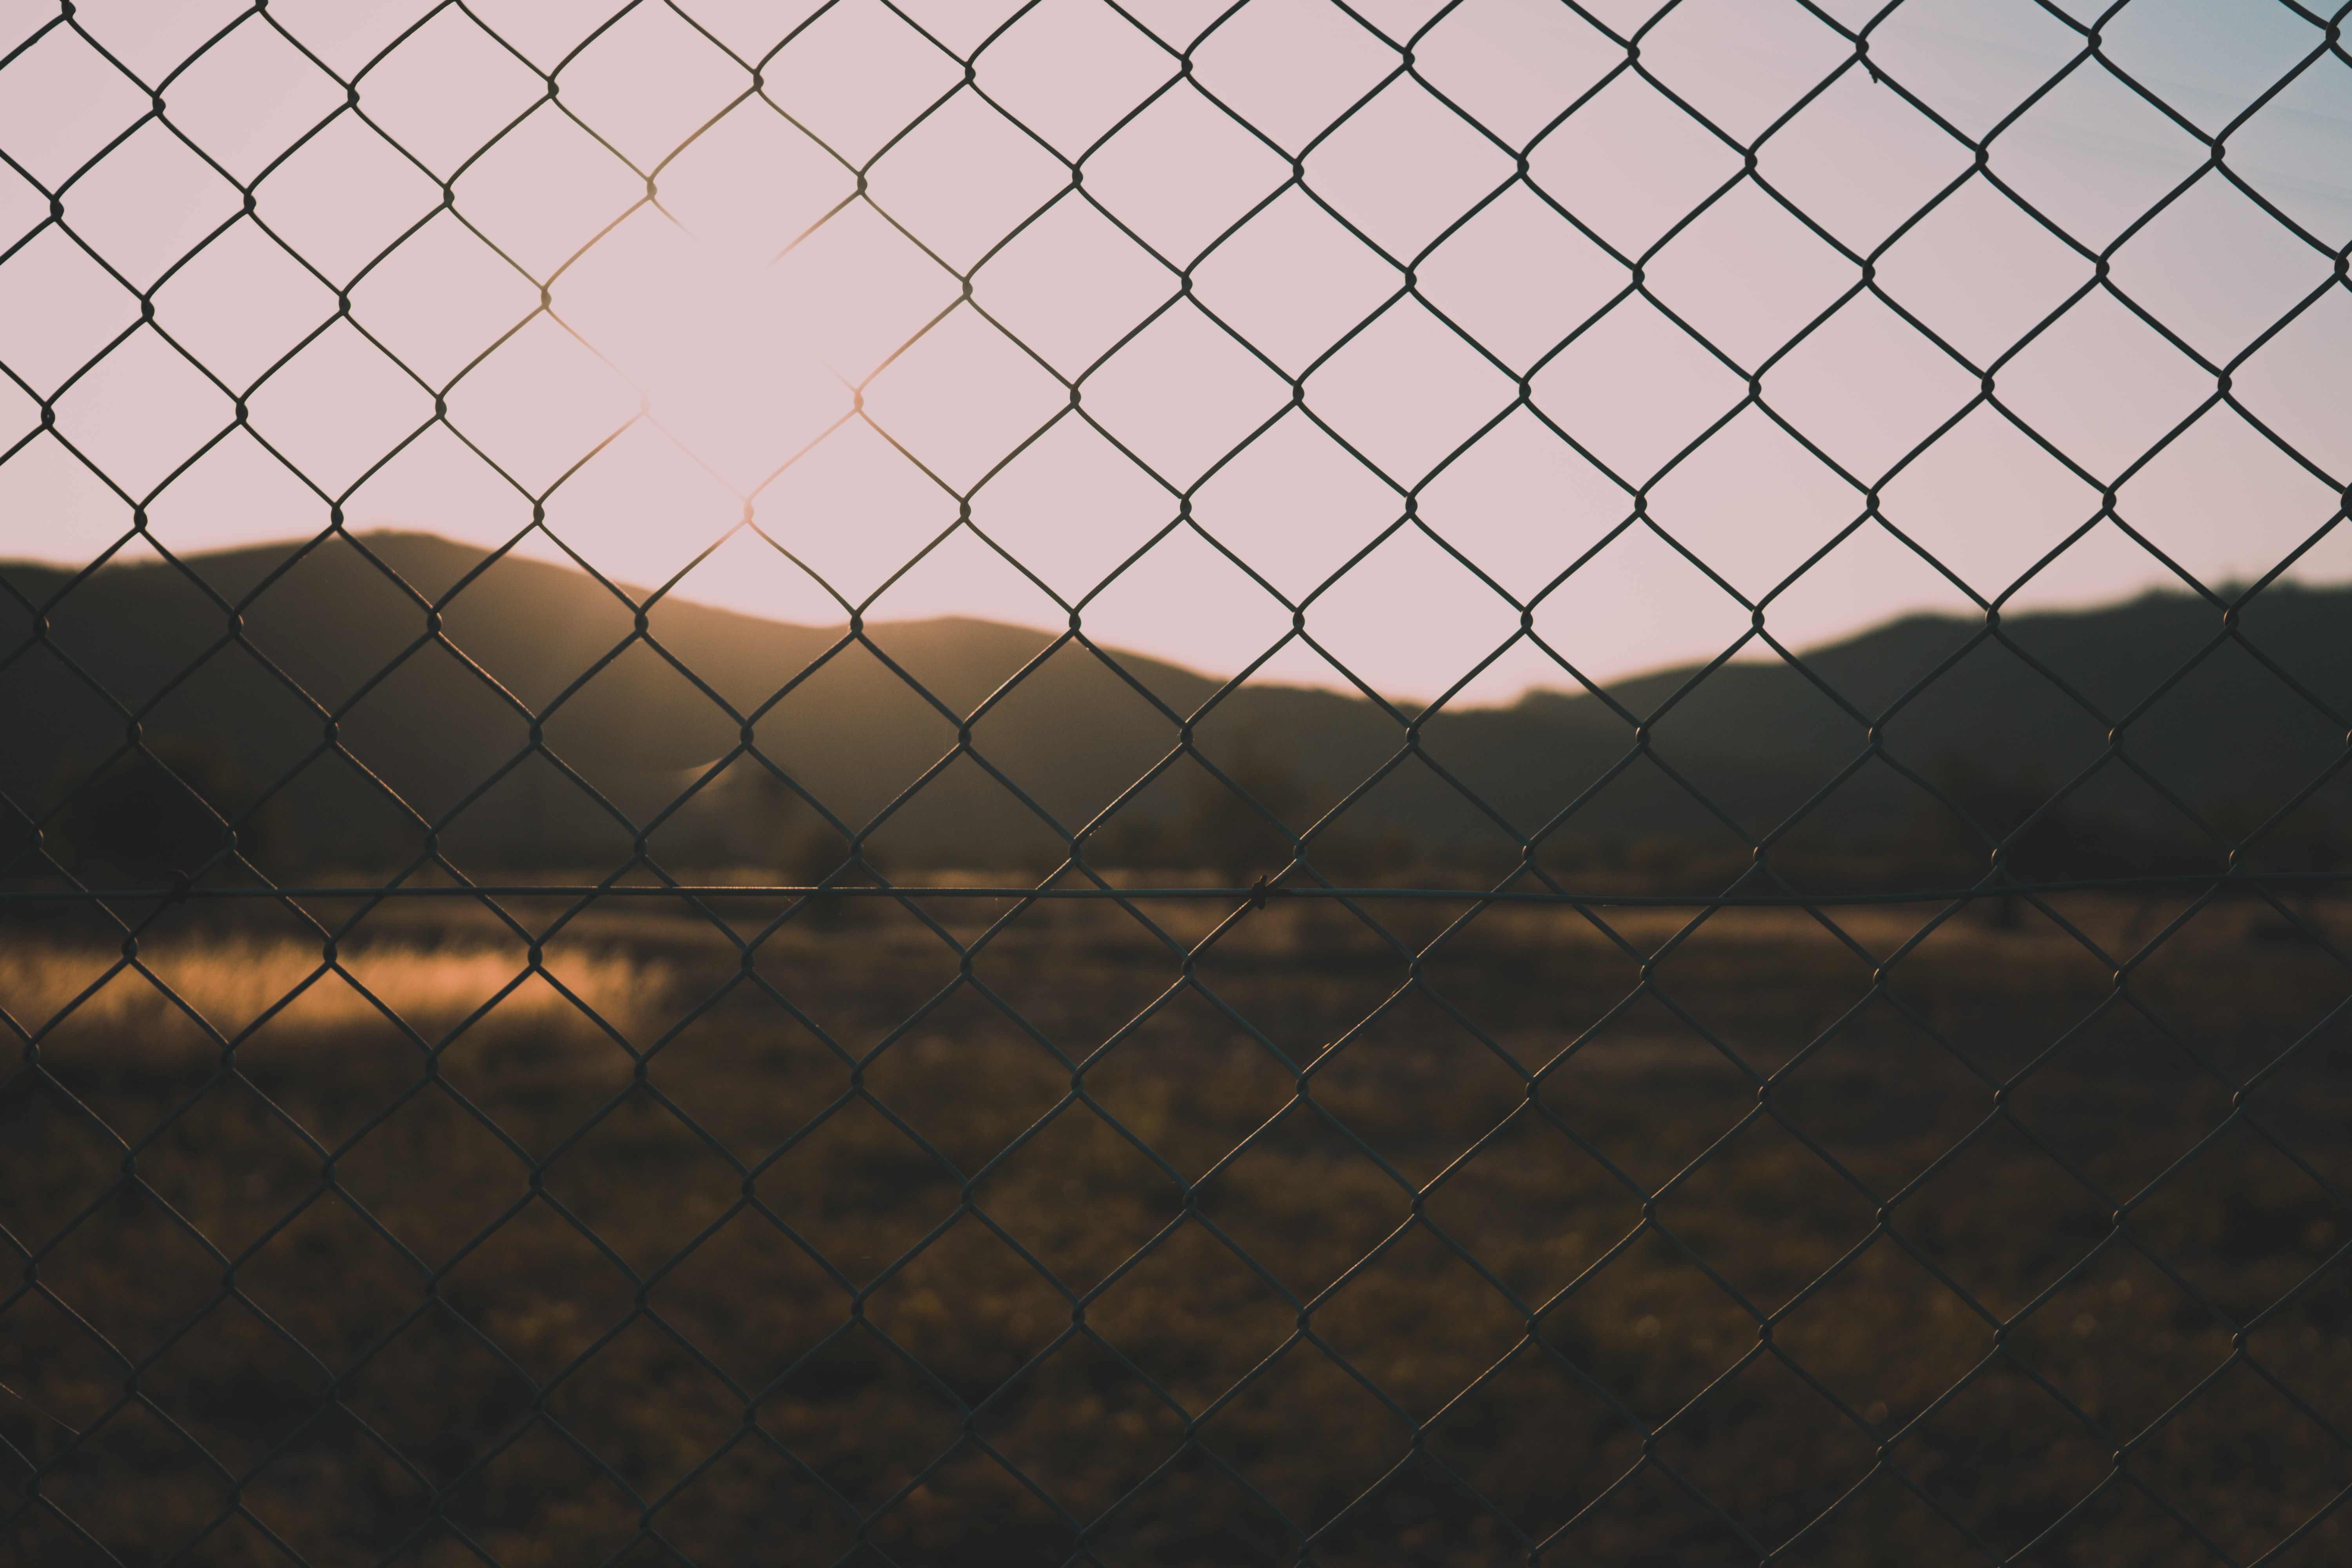 silhouette photography of chain-link fence